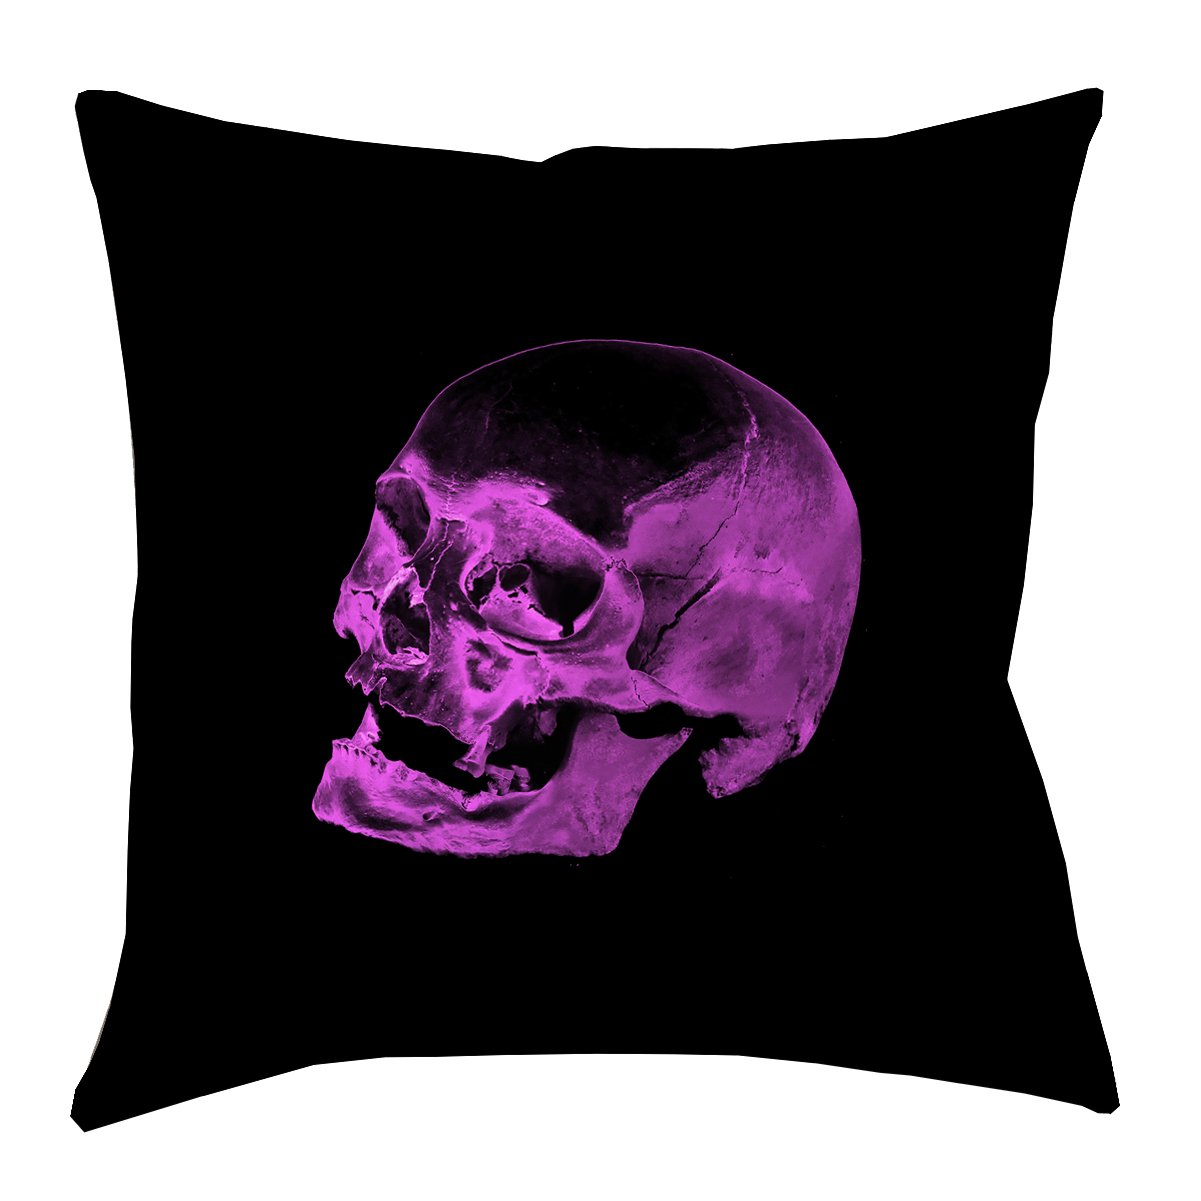 ArtVerse Katelyn Smith 40'' x 40'' Floor Double Sided Print with Concealed Zipper & Insert Purple Skull Pillow,